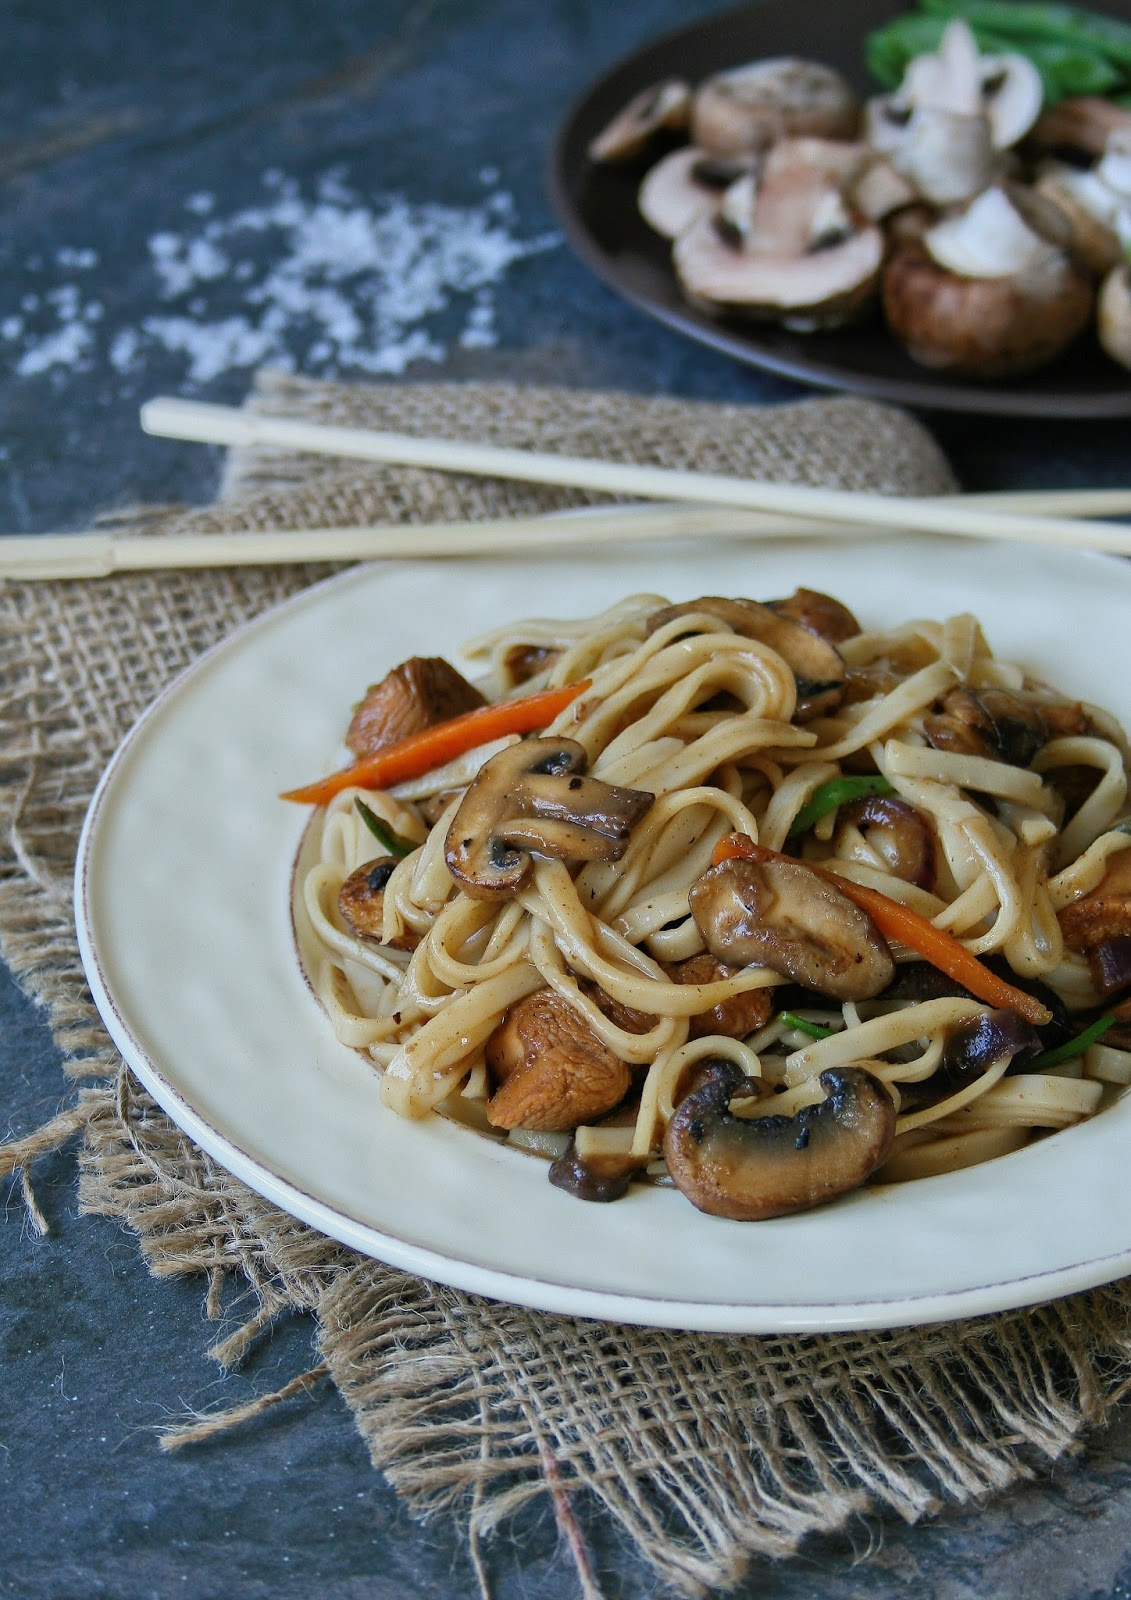 Chicken stir fry with mushrooms.